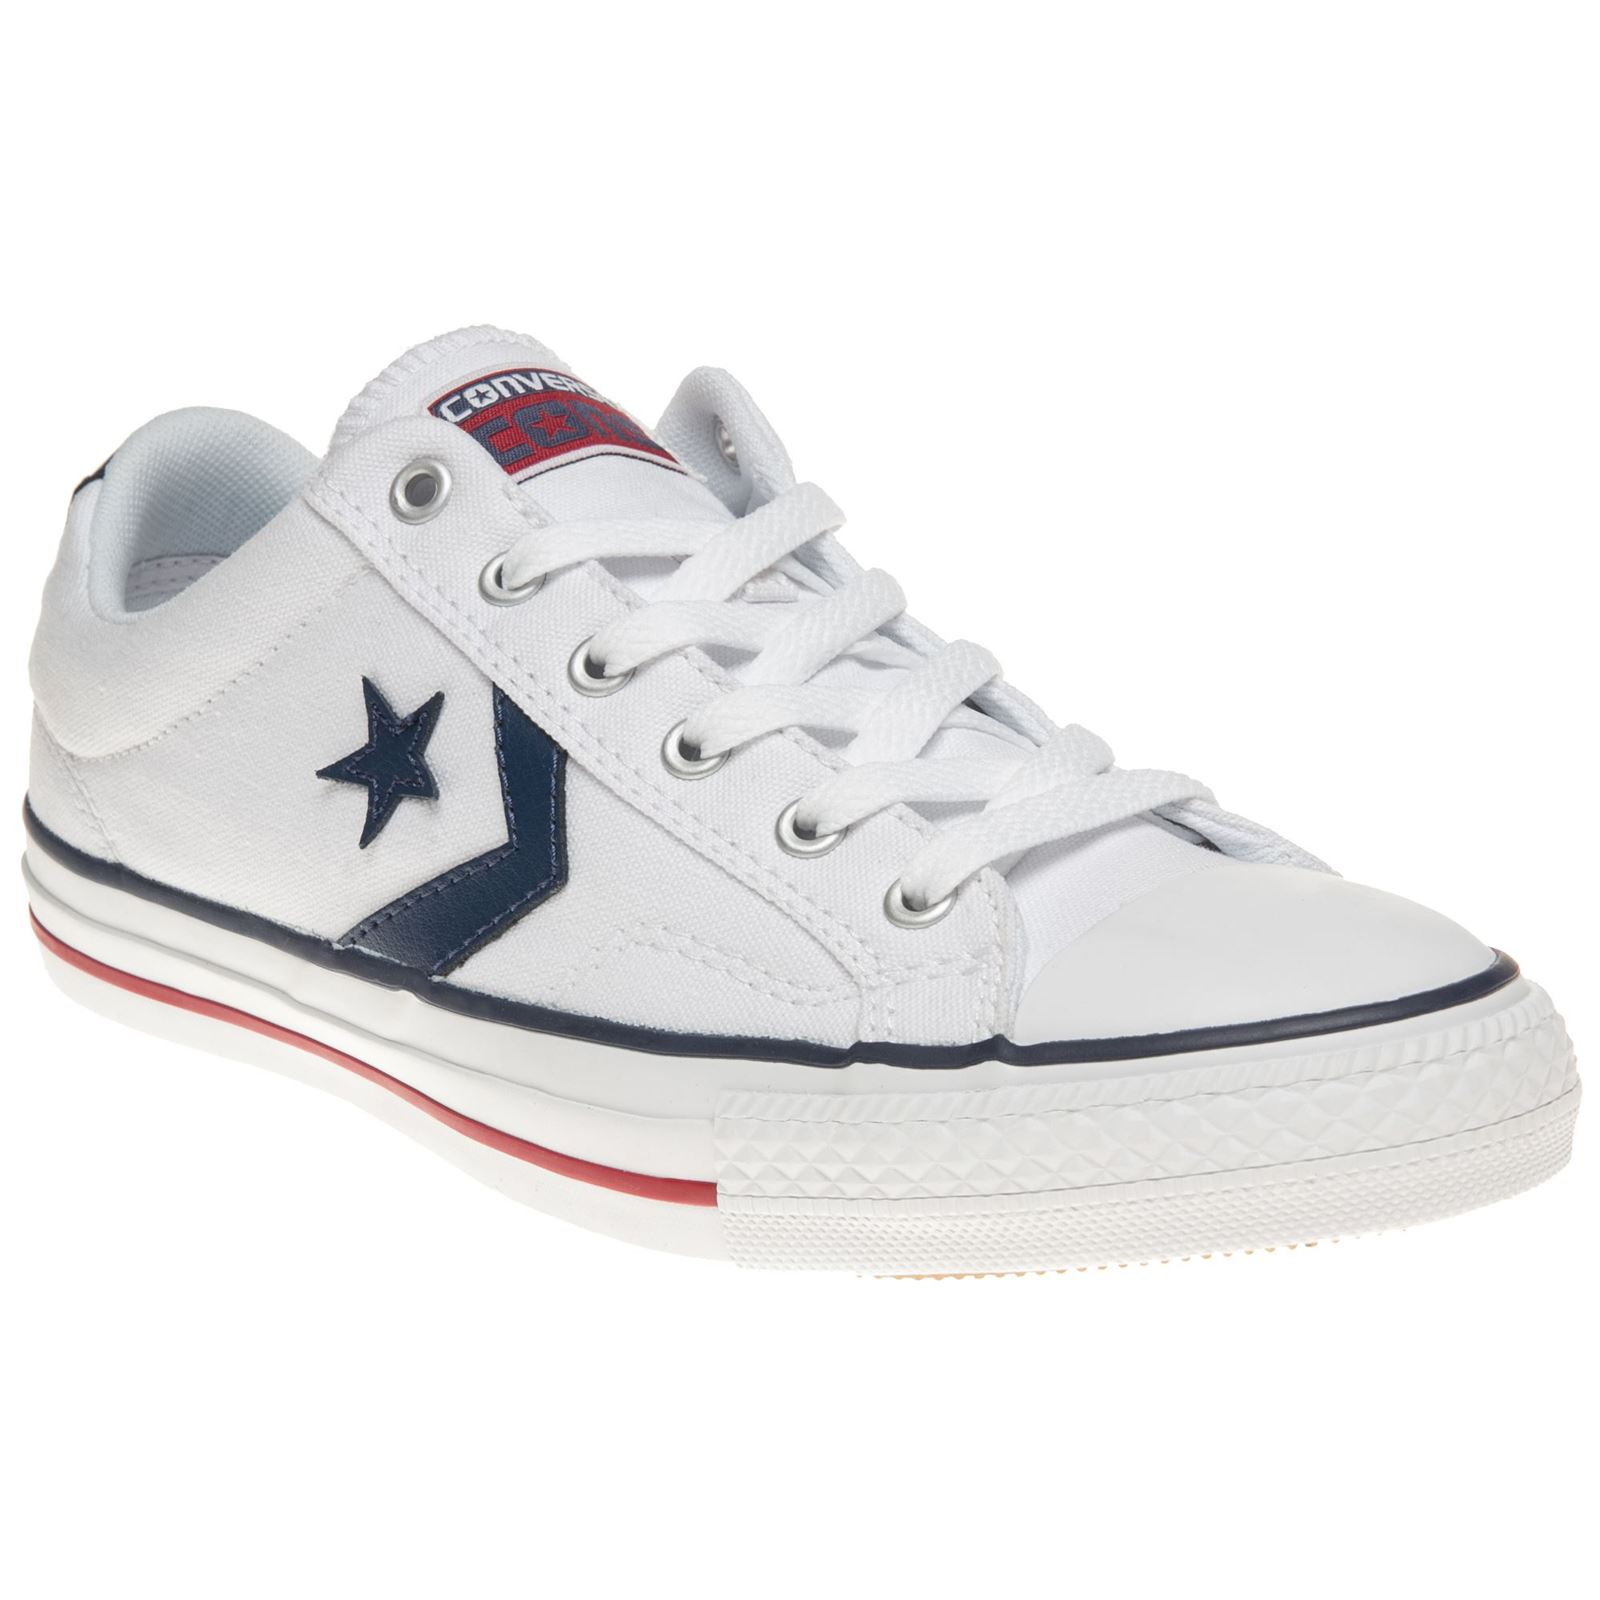 converse star player ox men trainers ebay. Black Bedroom Furniture Sets. Home Design Ideas